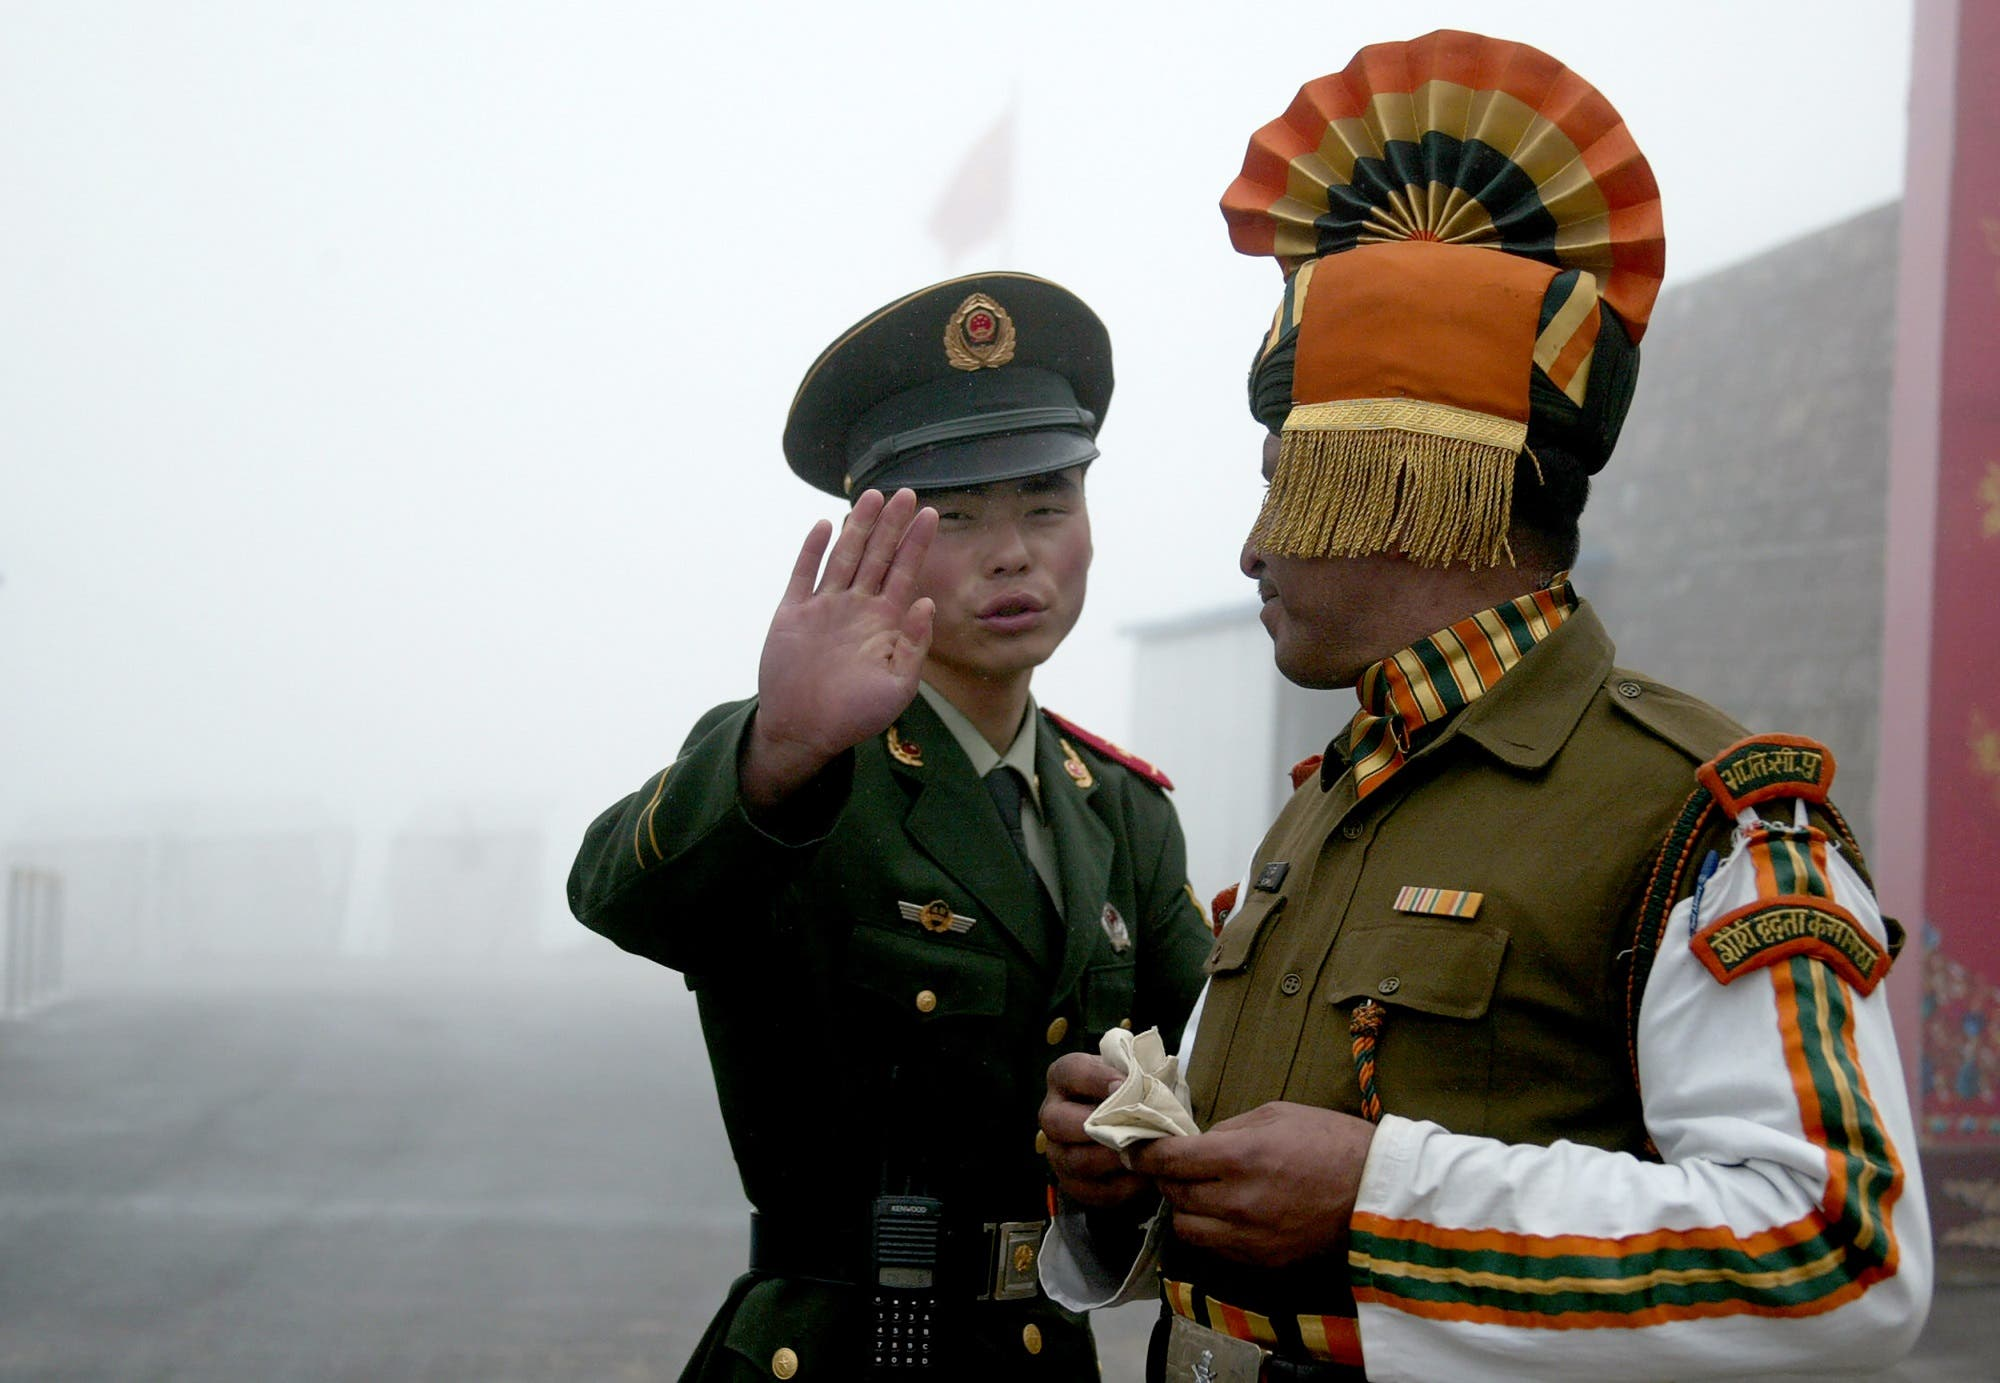 This July 10, 2008 file shows a Chinese soldier (L) next to an Indian soldier at the Nathu La border crossing between India and China in India's northeastern Sikkim state. (AFP)